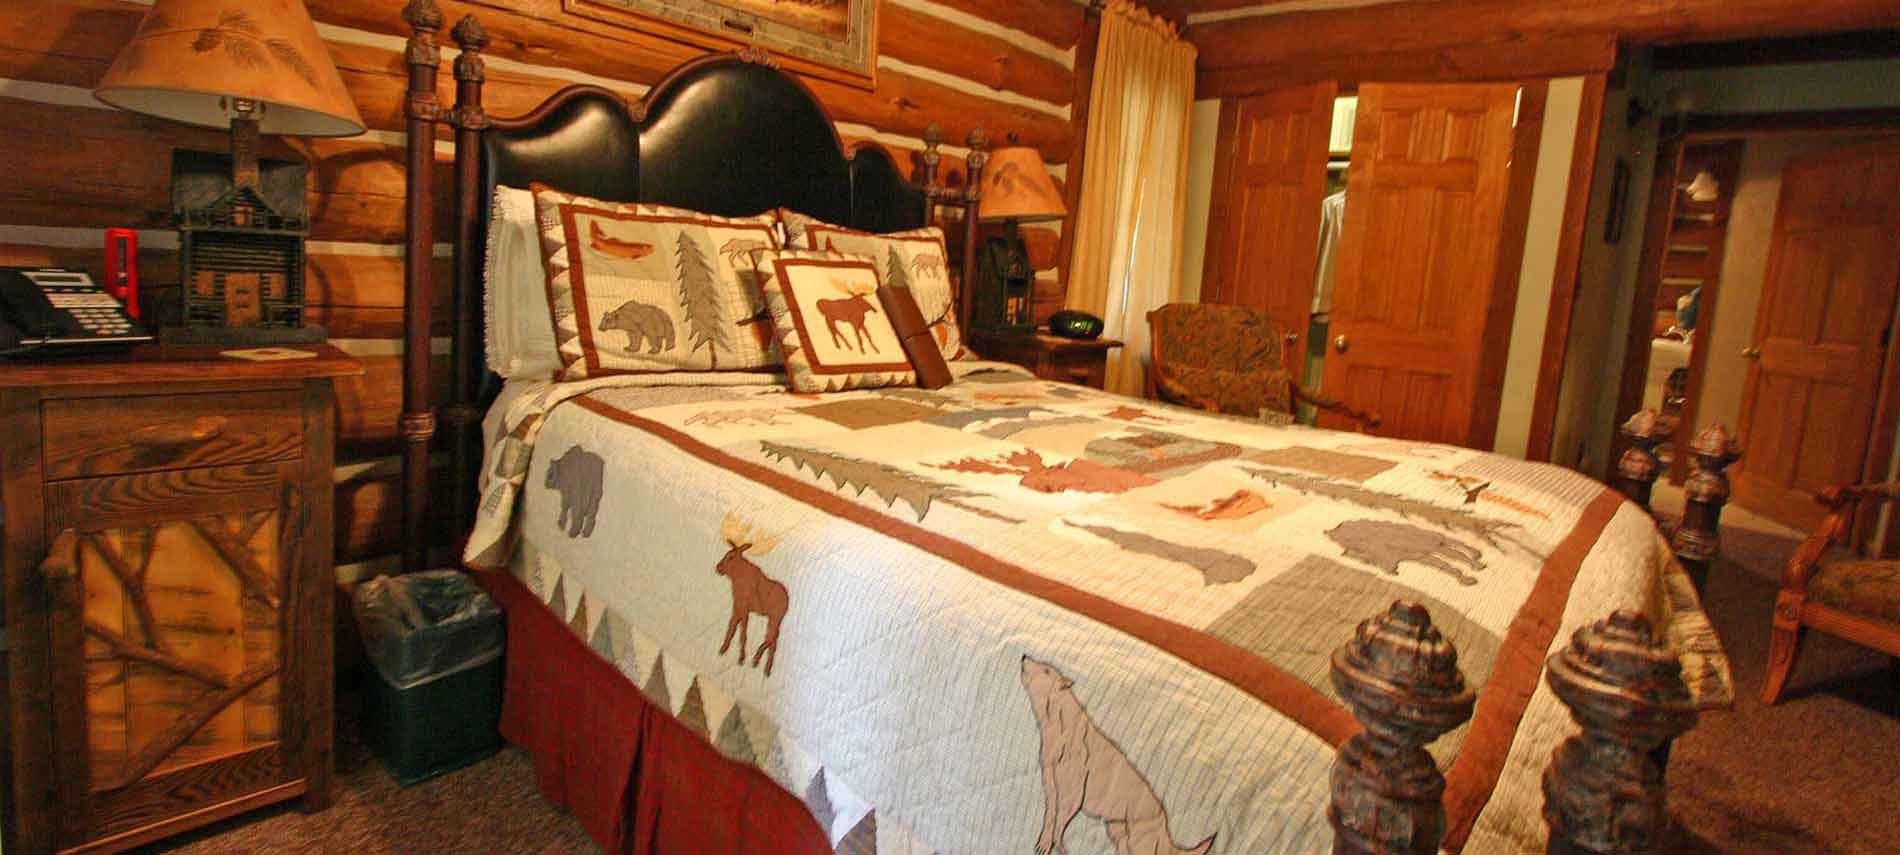 Westly Allen iron bed with a very rustic quilt with moose, bears and evergreens, along side hand crafted night stands. One wall is showing the logs in the wall and an accent chair